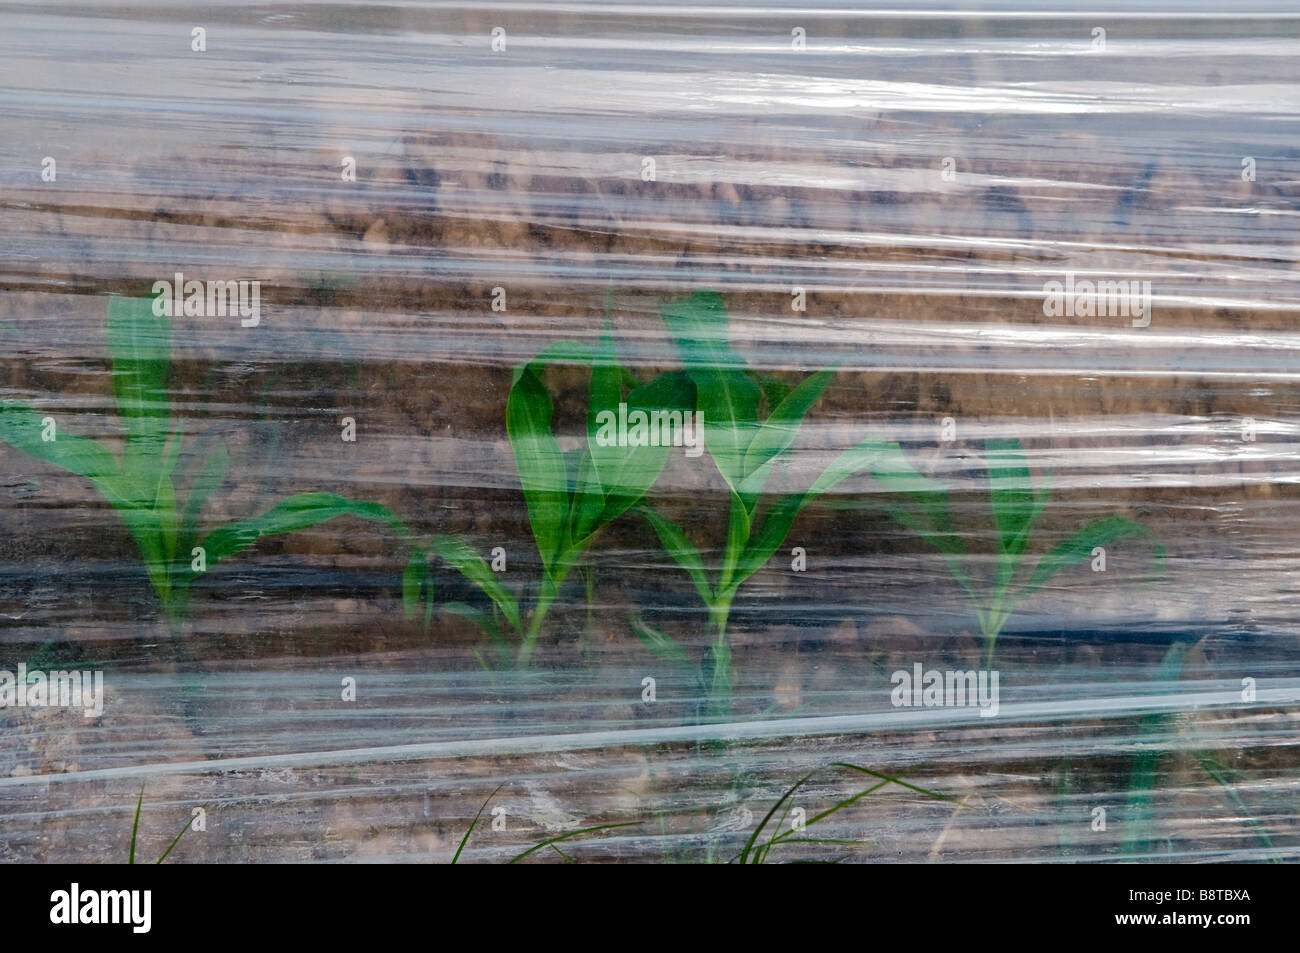 A seedling is seen through strips of plastic used to control the growth of a crop in Israel - Stock Image